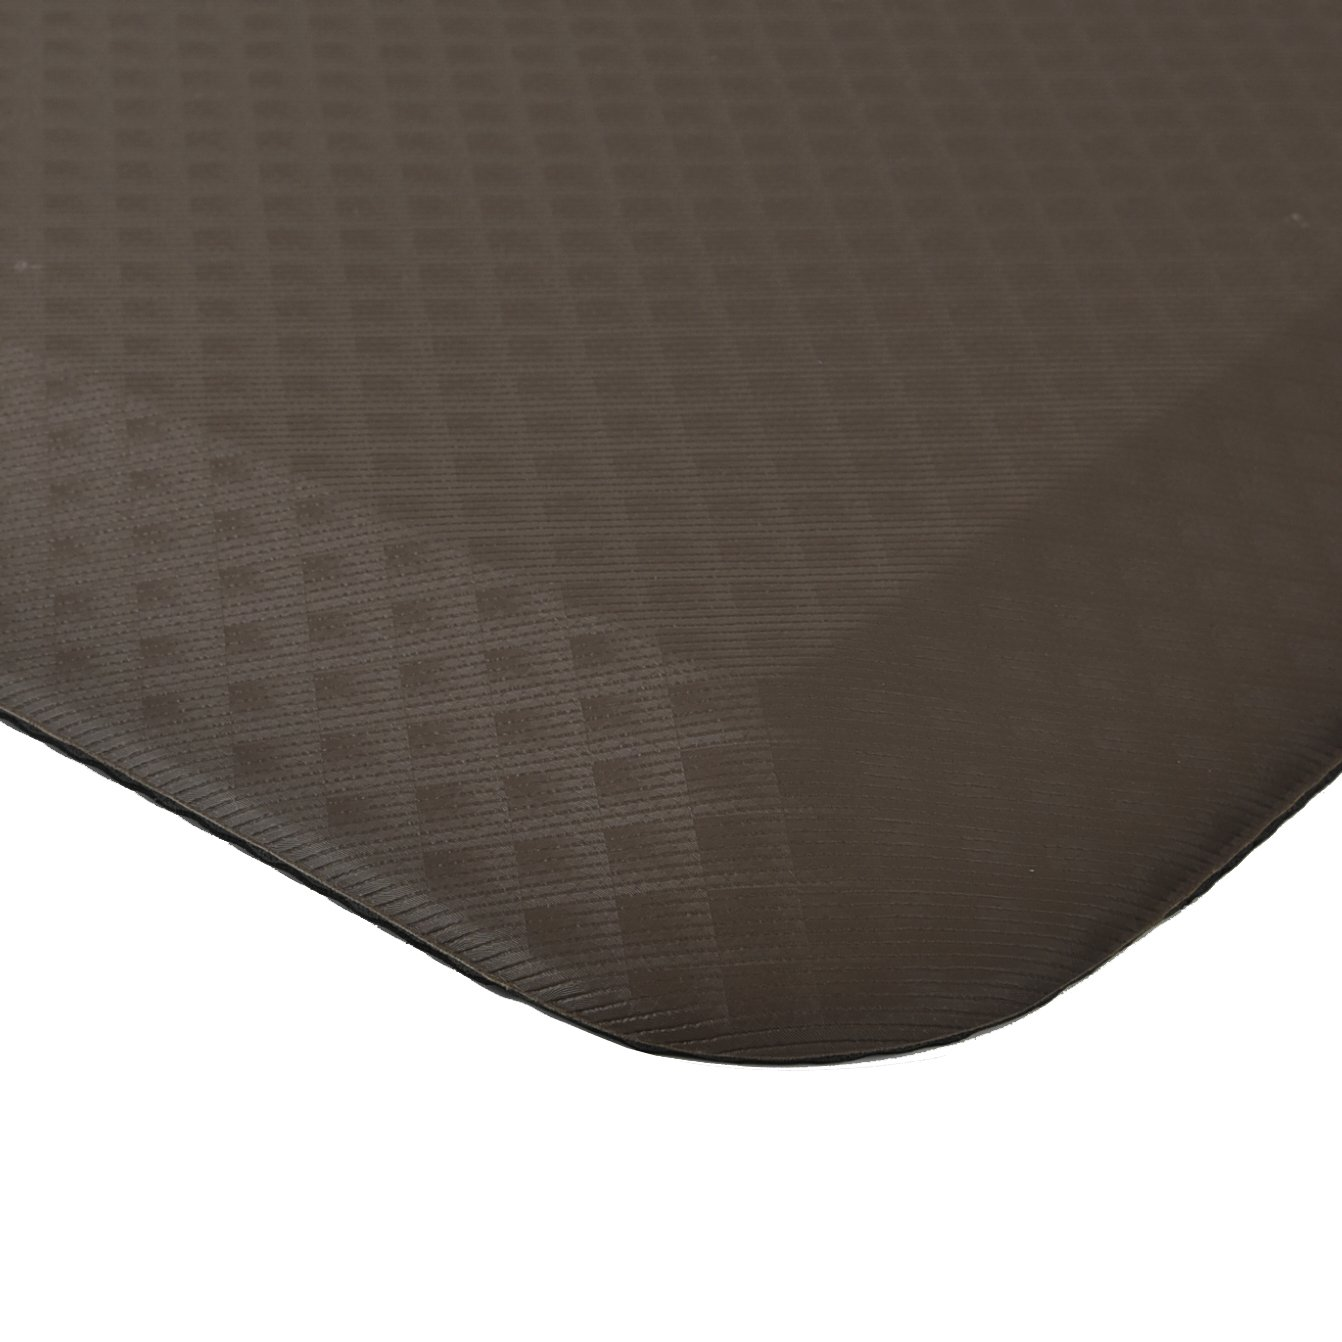 FOOTIGHT Cushioned Non-Slip Anti-Fatigue 20x39x3/4'' Eco-friendly Waterproof Standing Comfort Mat, Perfect for for Office,Kitchen,Standing desk(Brown) by FOOTIGHT